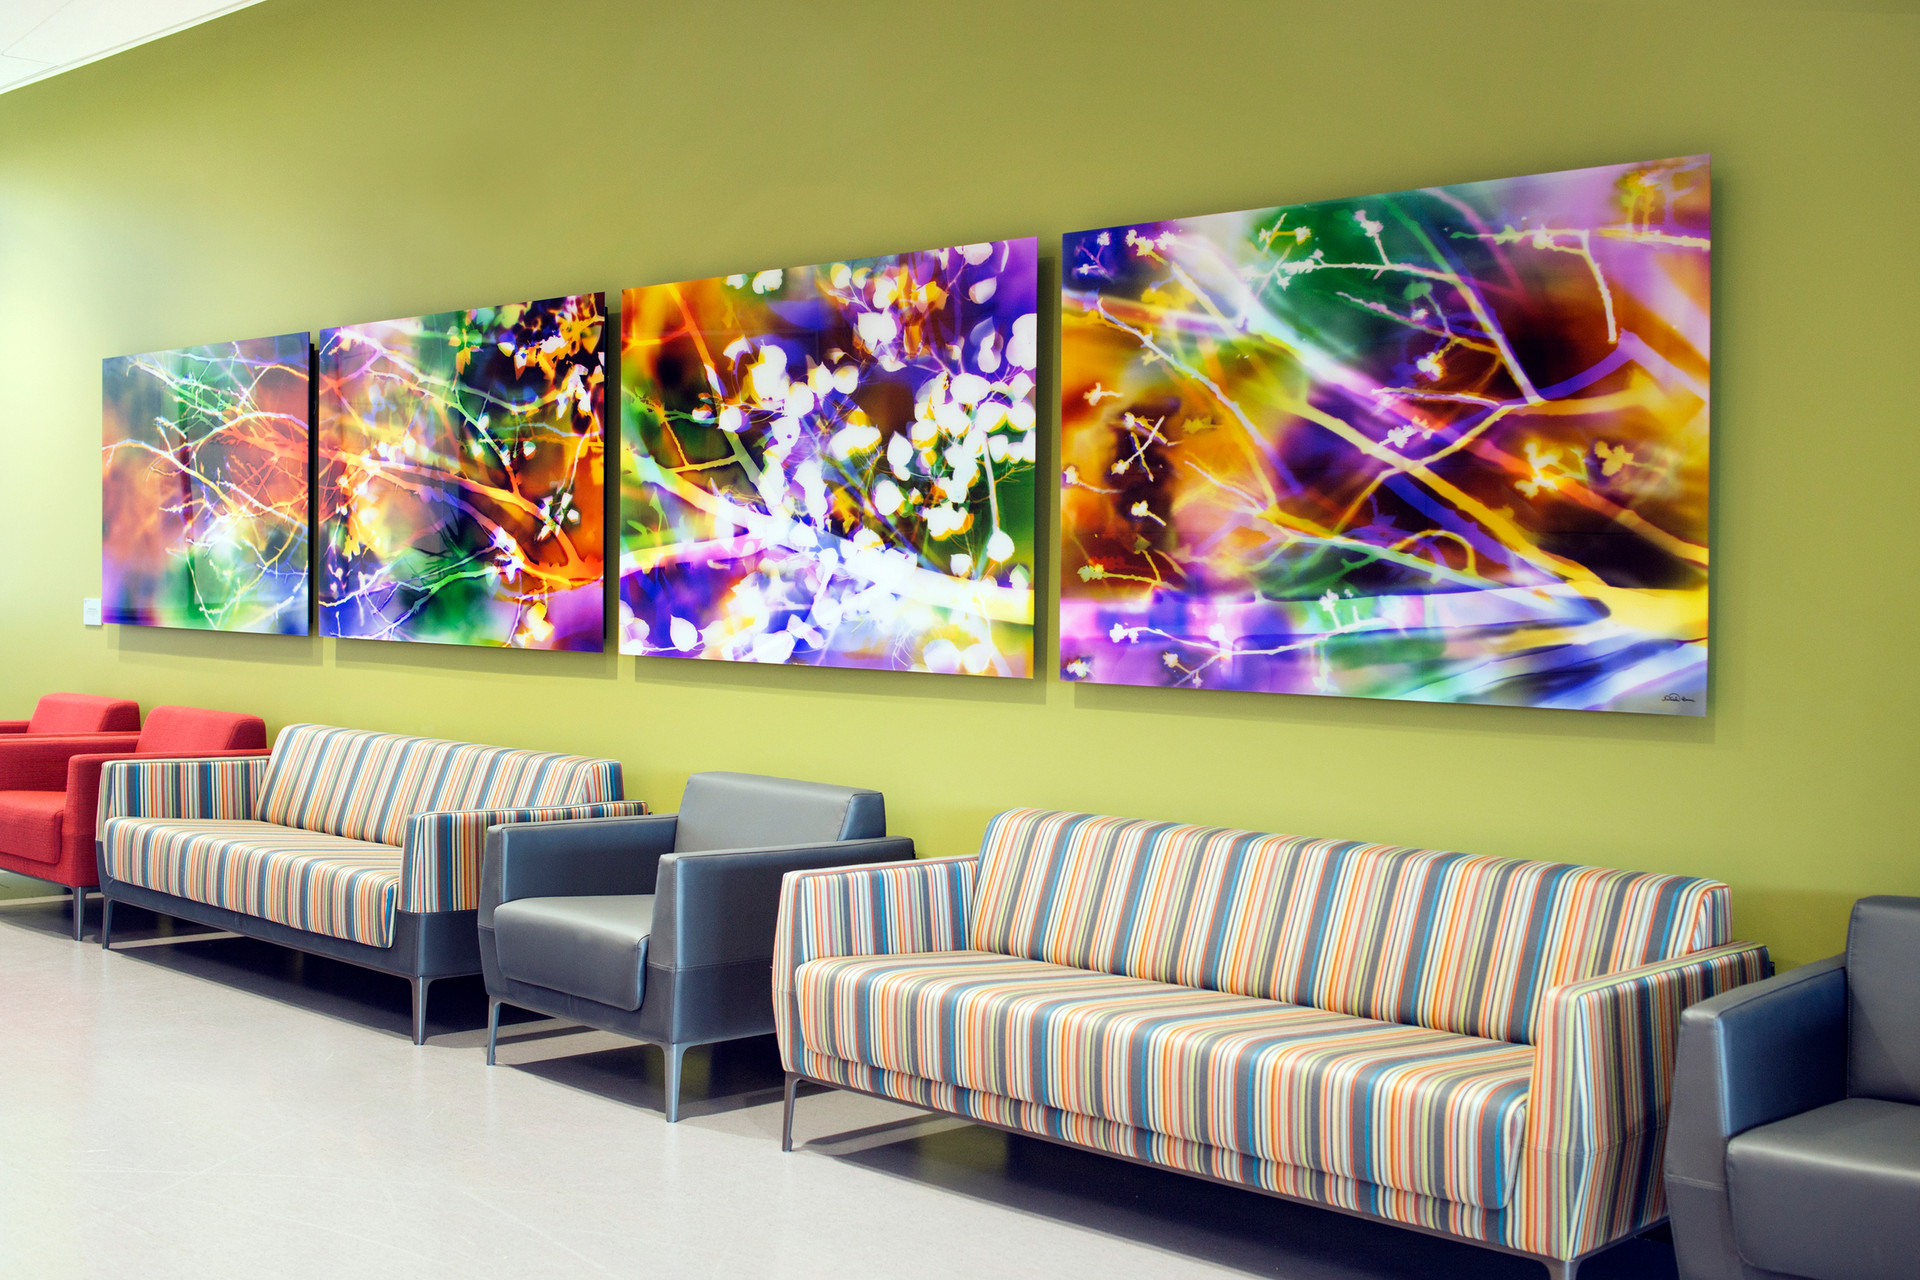 "Inspired by Nature: Seasons, 40"" x 240"" (4 40"" x 60"" panels), Commission by Utah Public Art Program, Installed in Noorda School of Dentistry at University of Utah, Salt Lake City, UT"